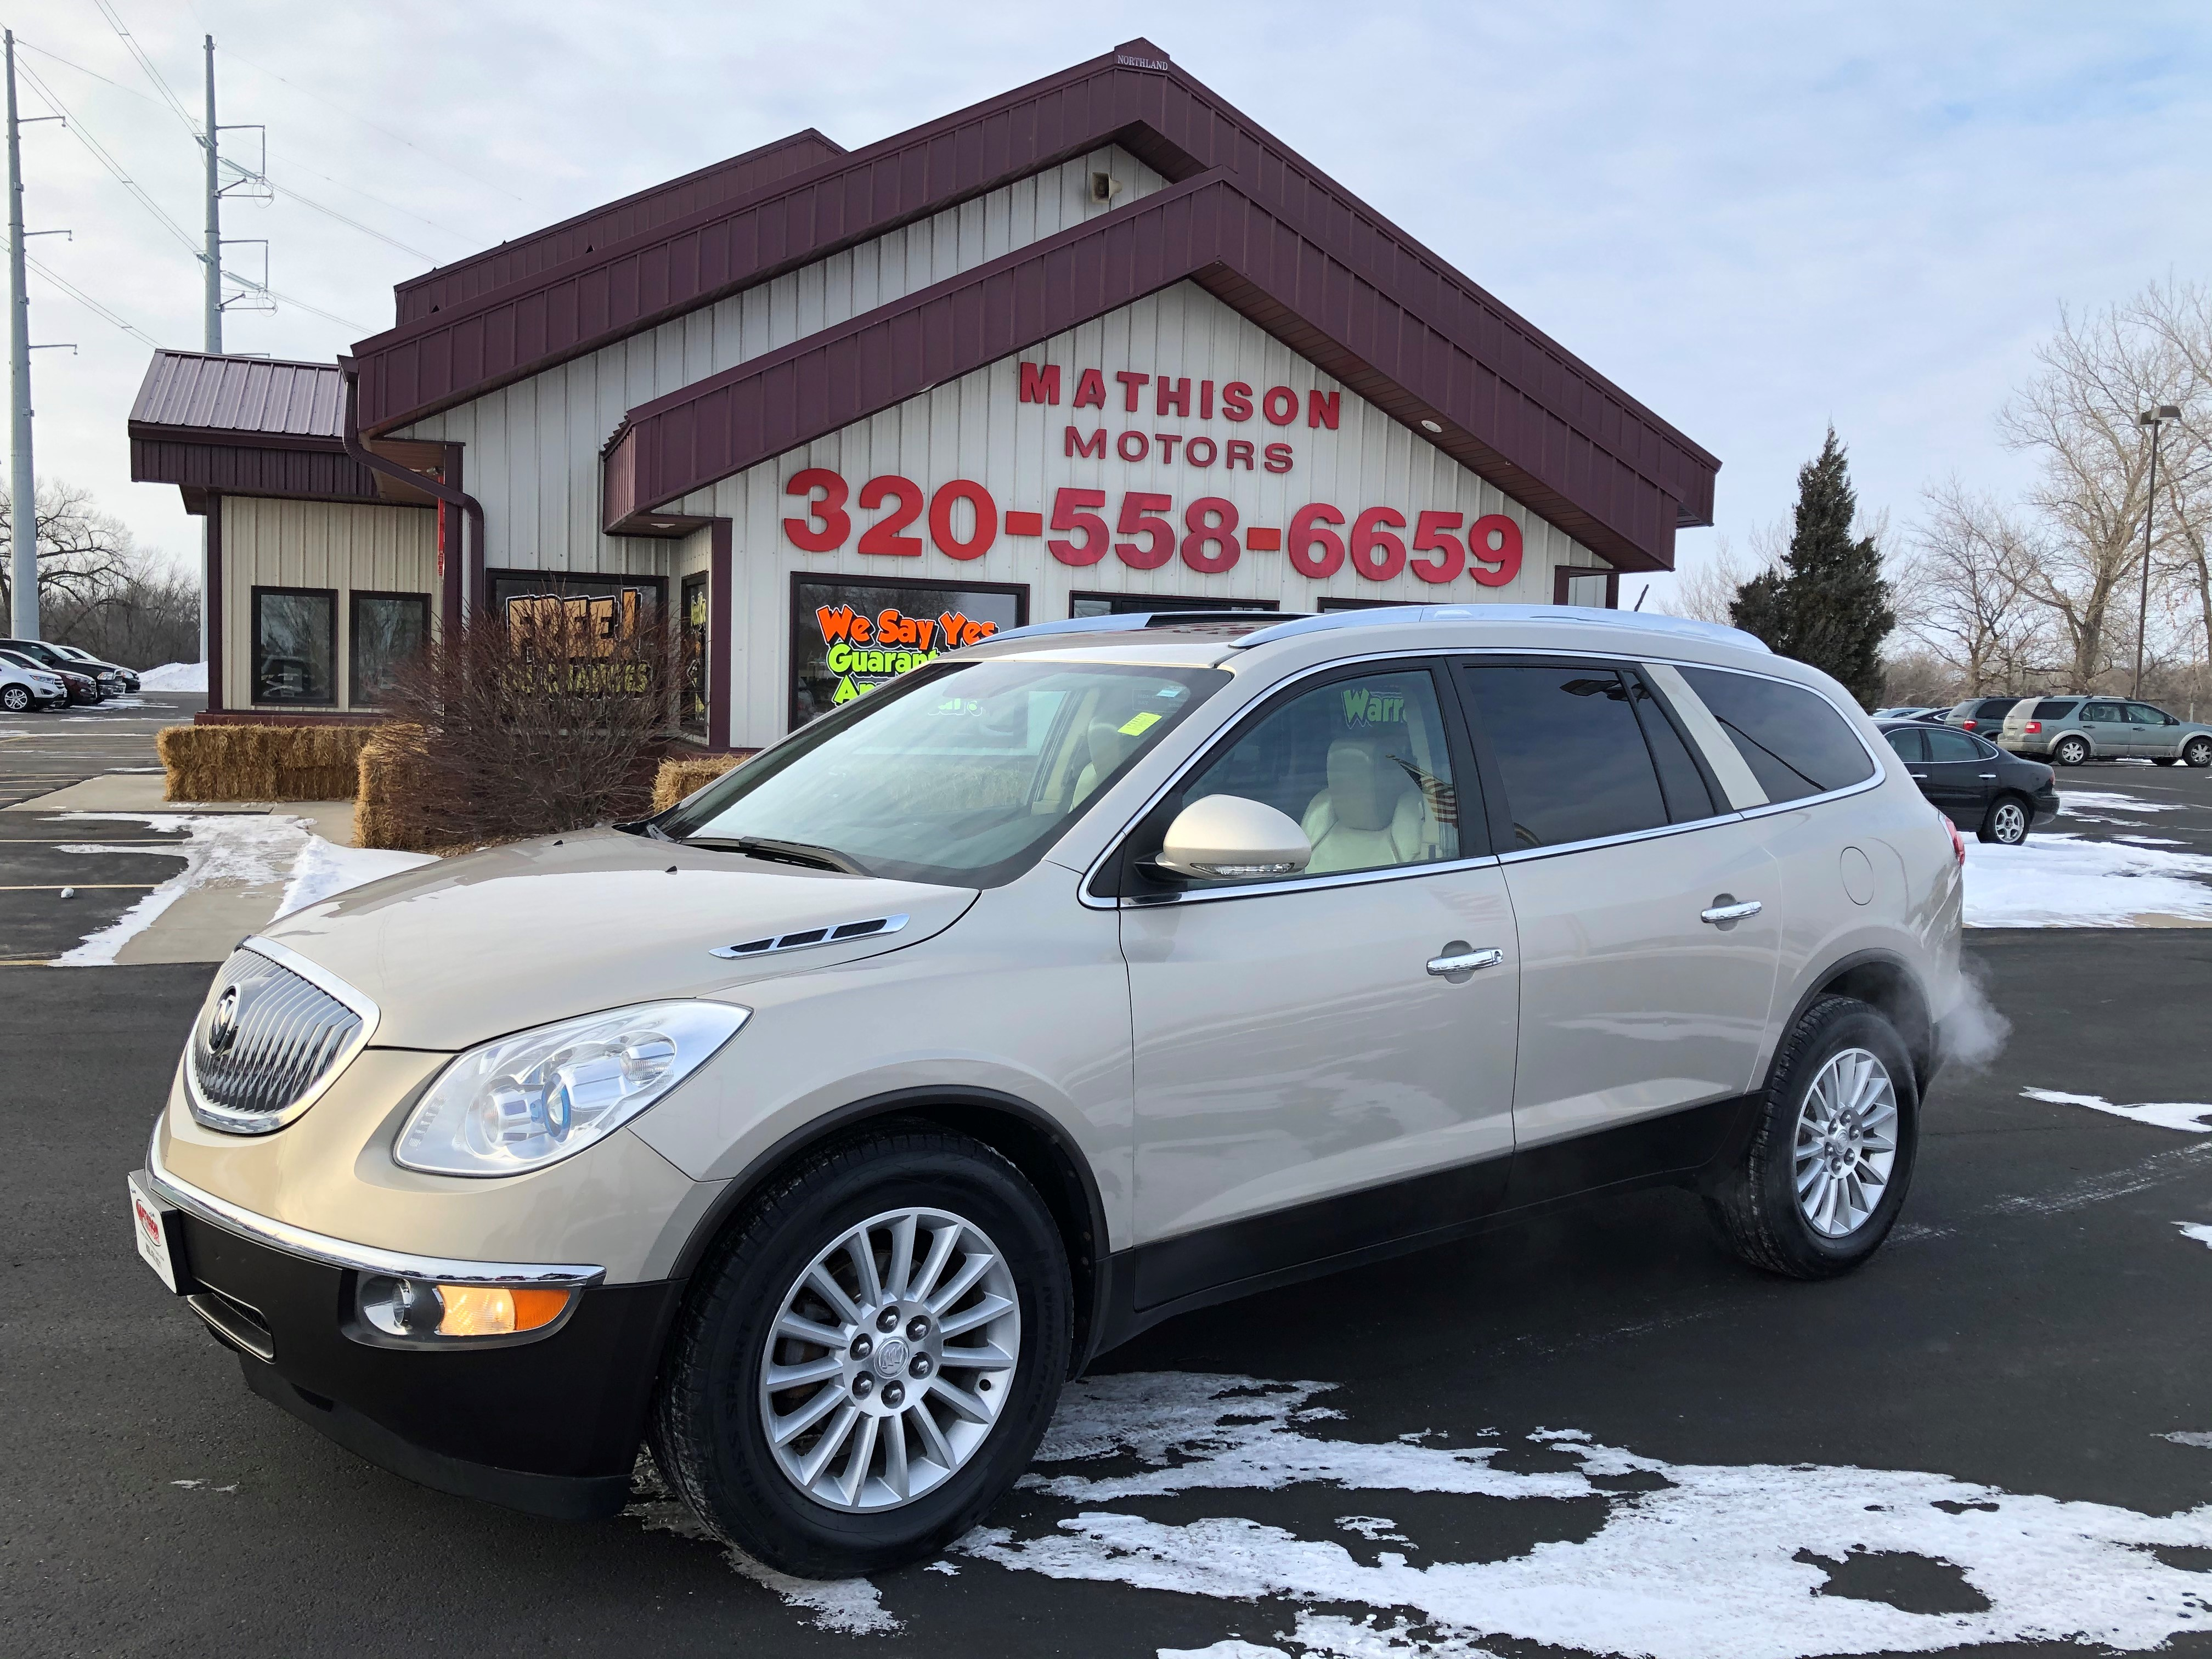 used vehicle - SUV Buick Enclave 2011